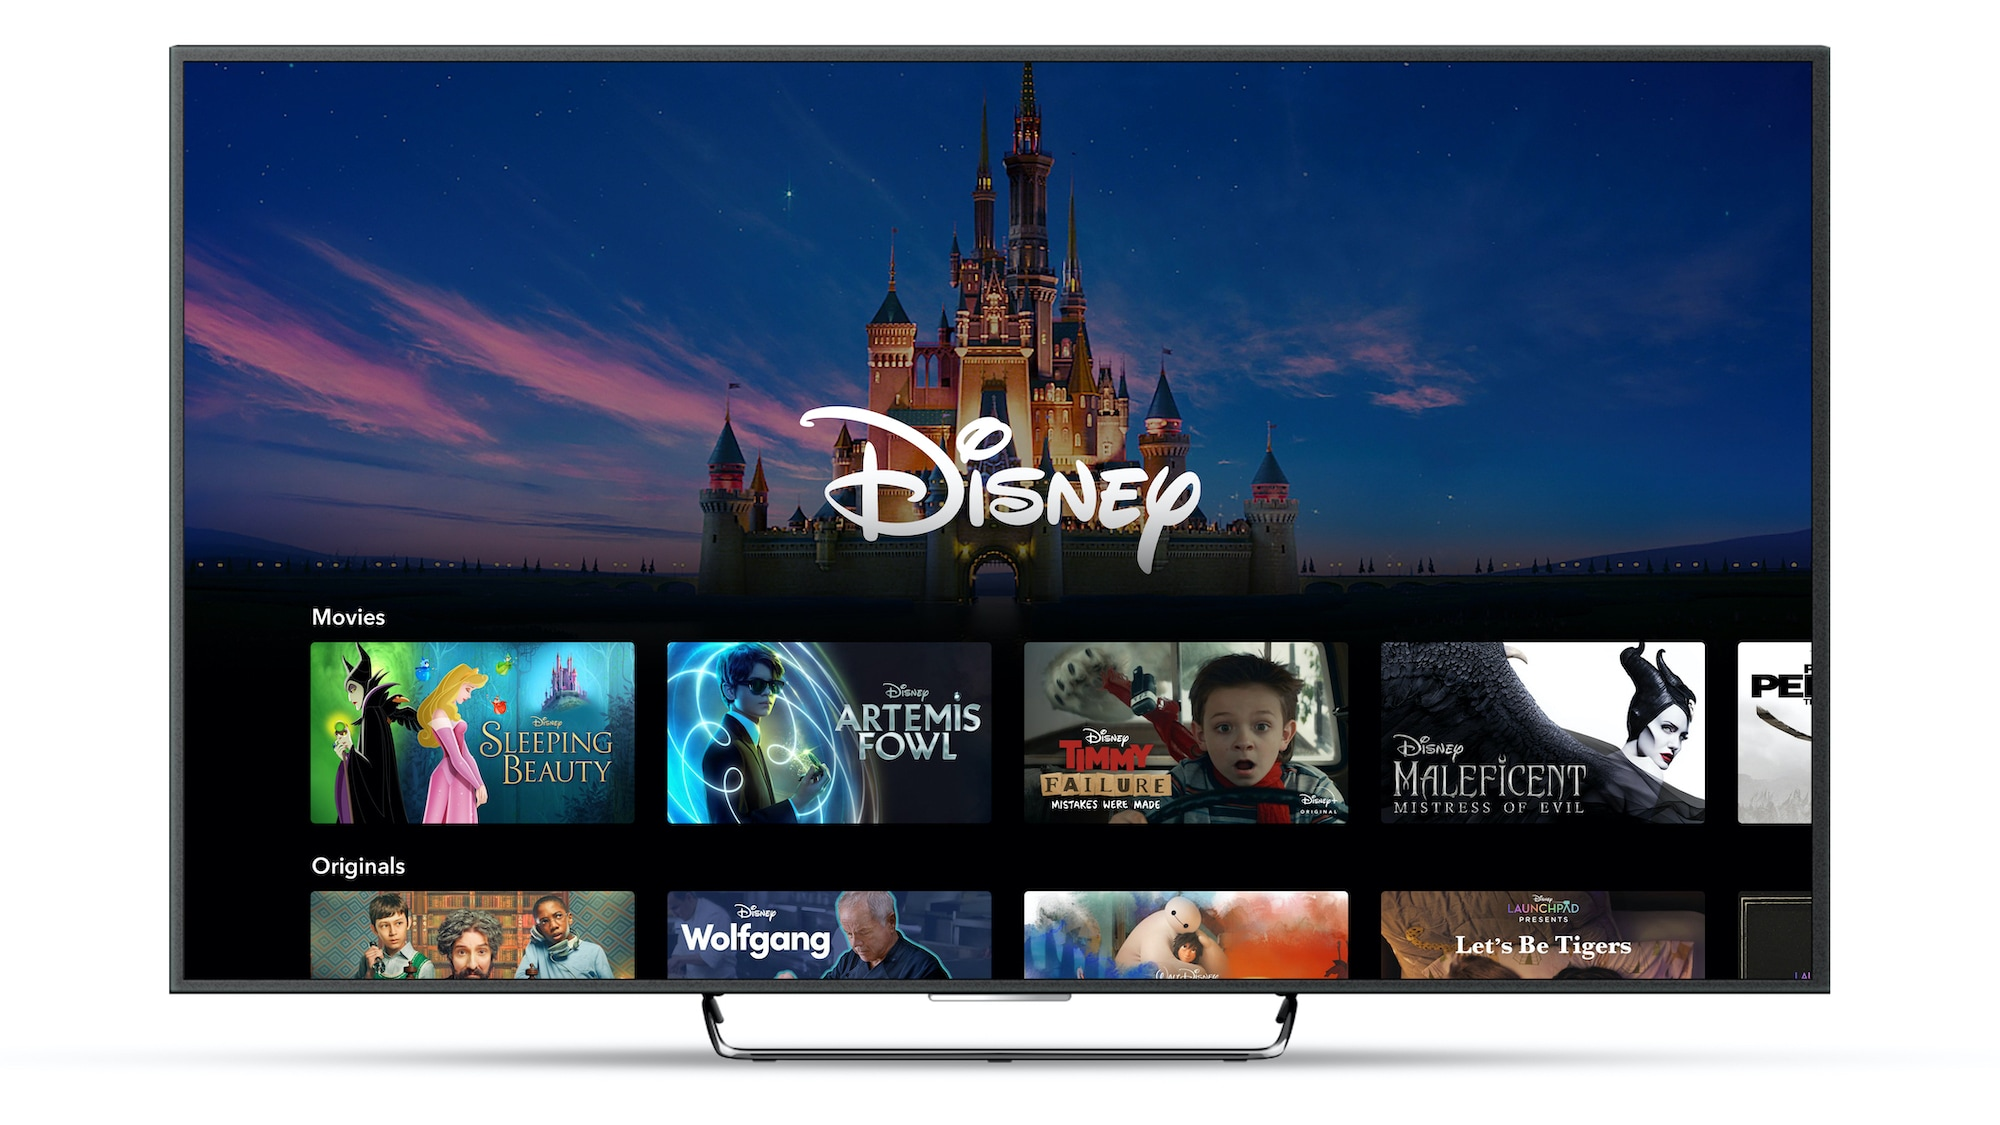 Disney+ Brand Landing Page on Connected TV Device